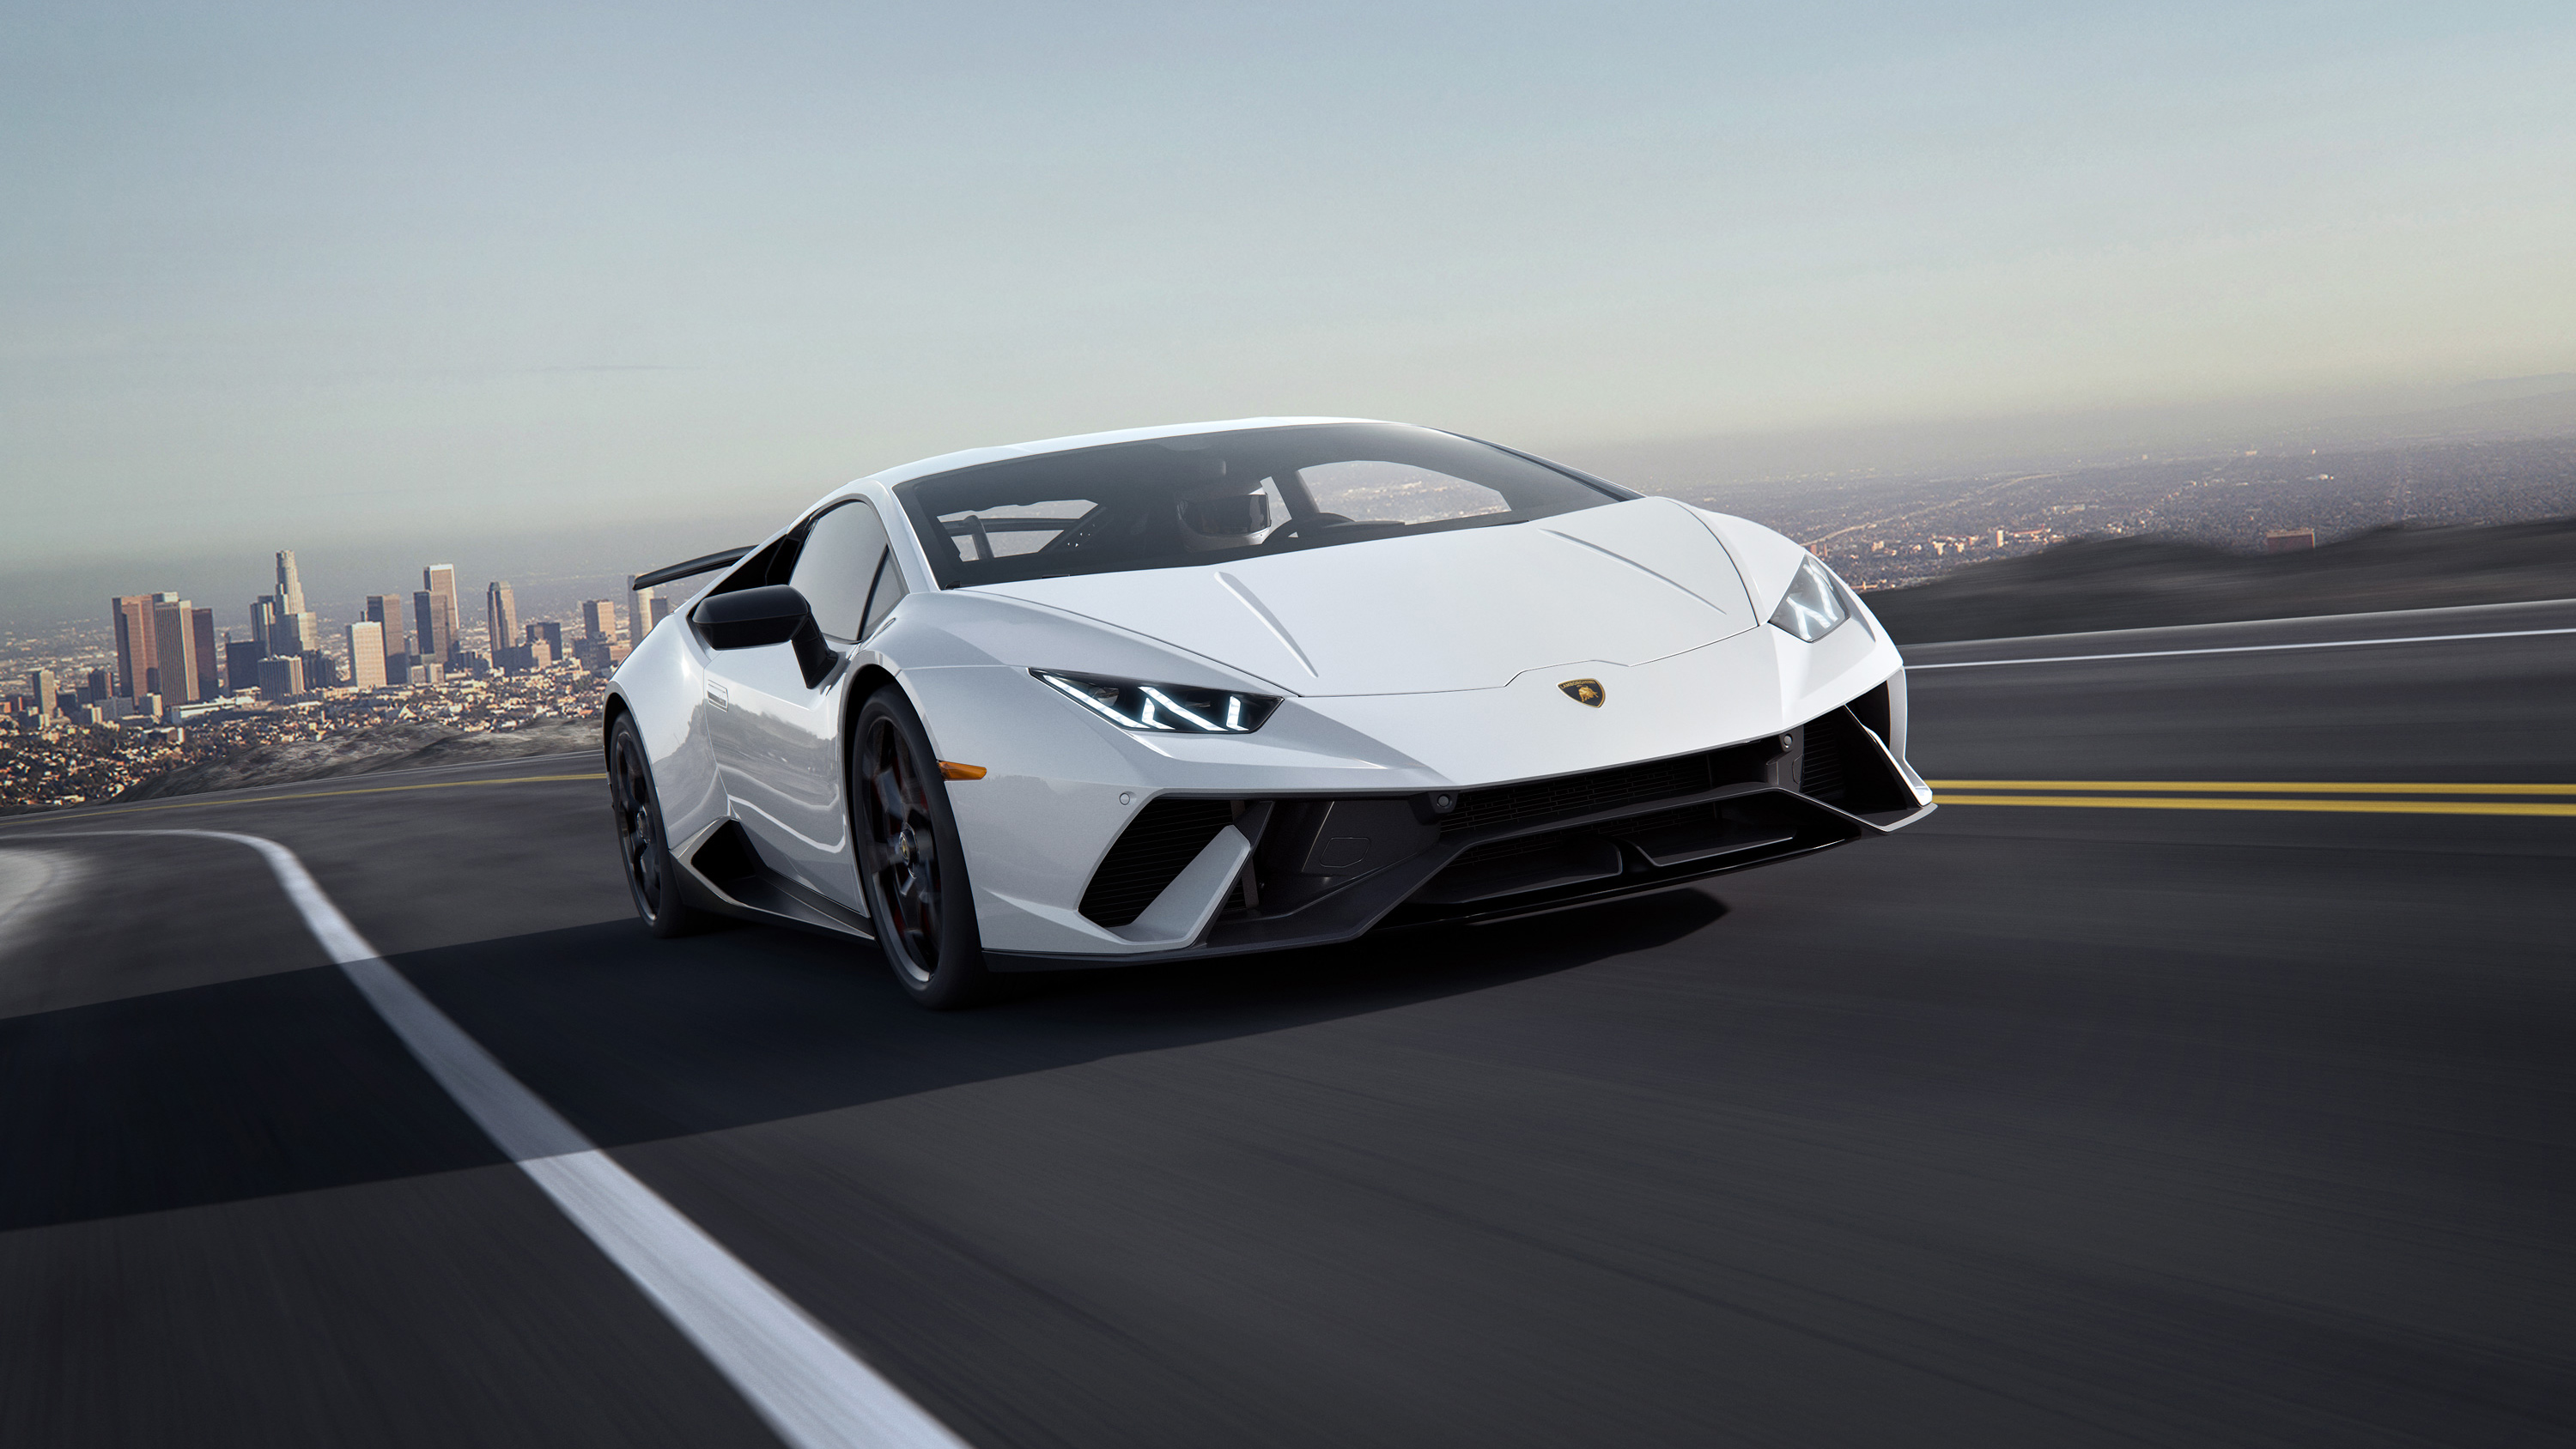 Lamborghini Huracan 2018 Wallpaper Hd Car Wallpapers Id 9084